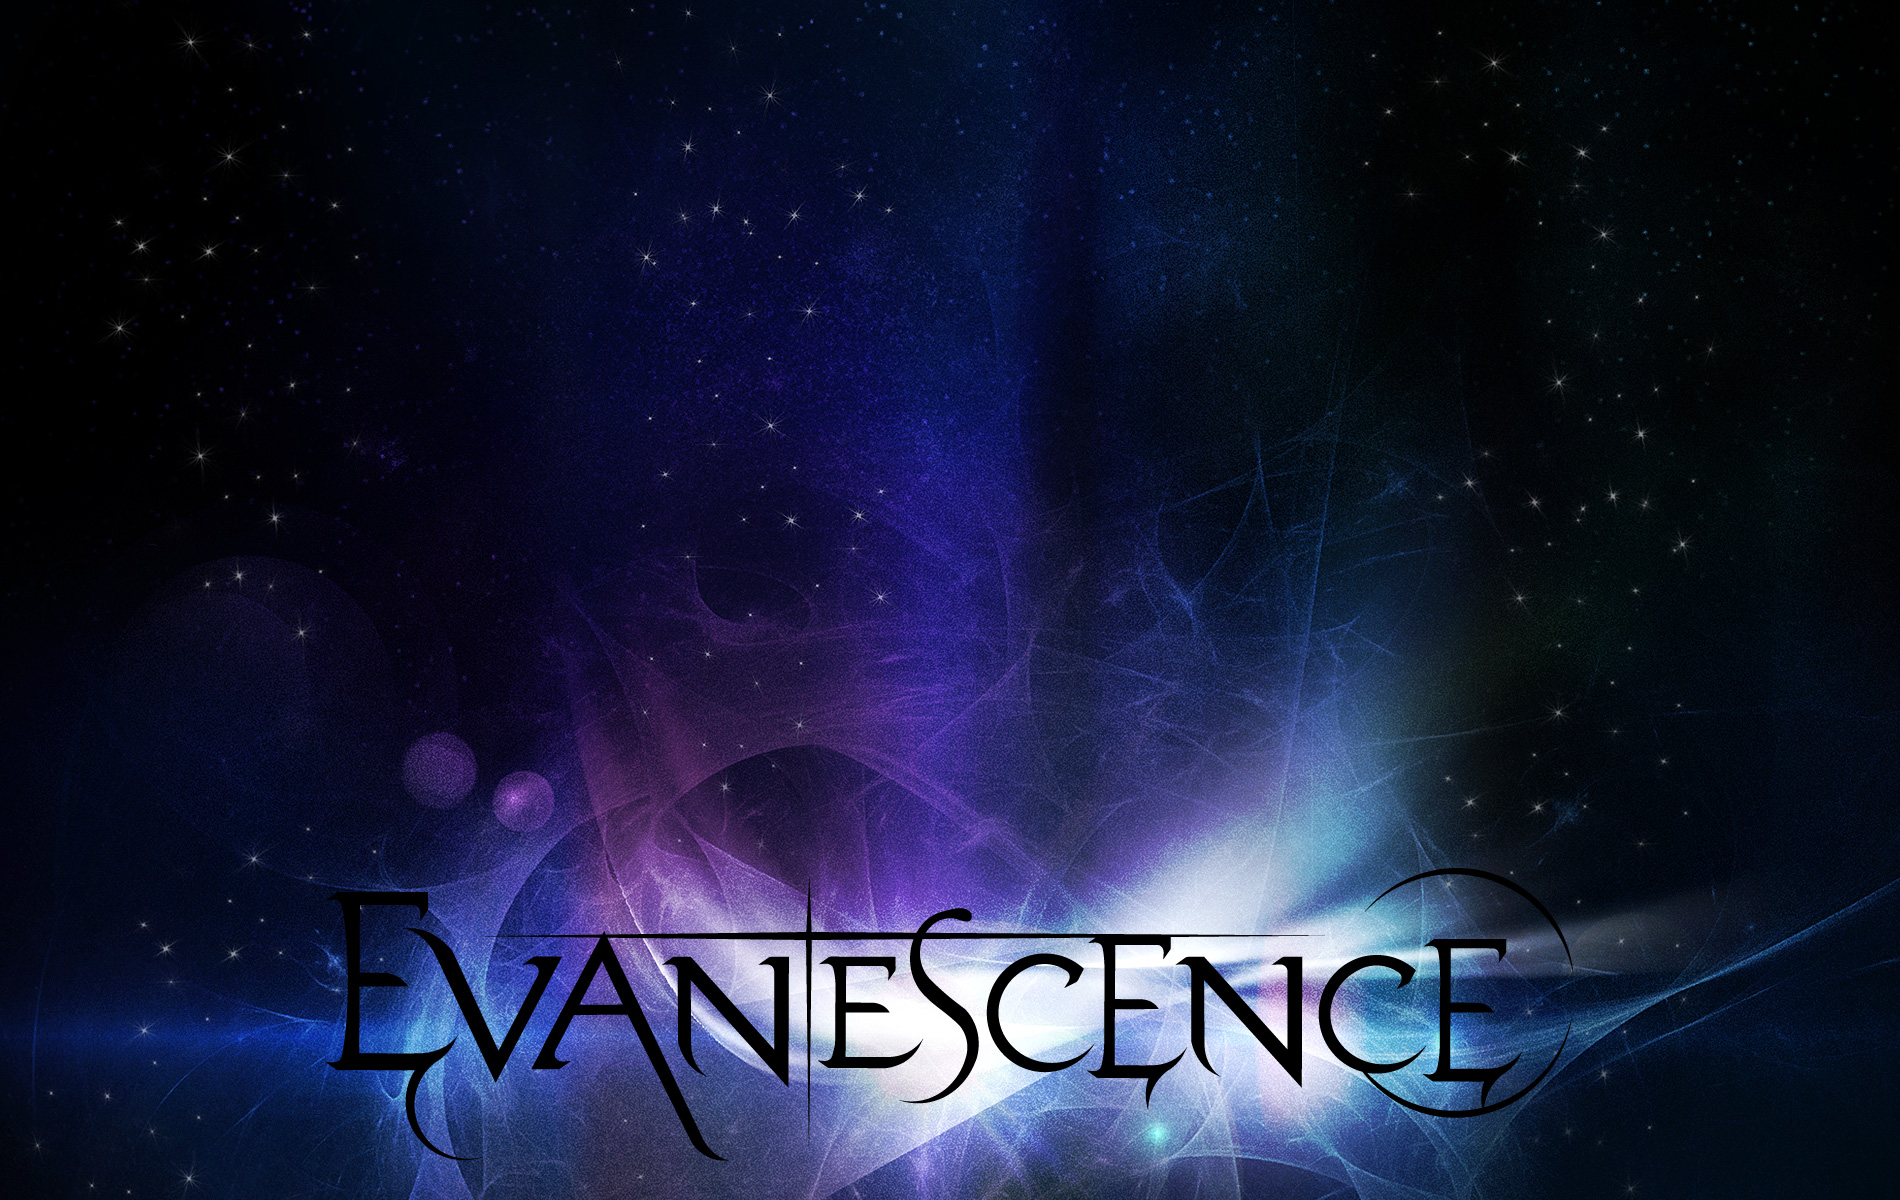 evanescence wallpaper   Evanescence Photo 28102380 1900x1200